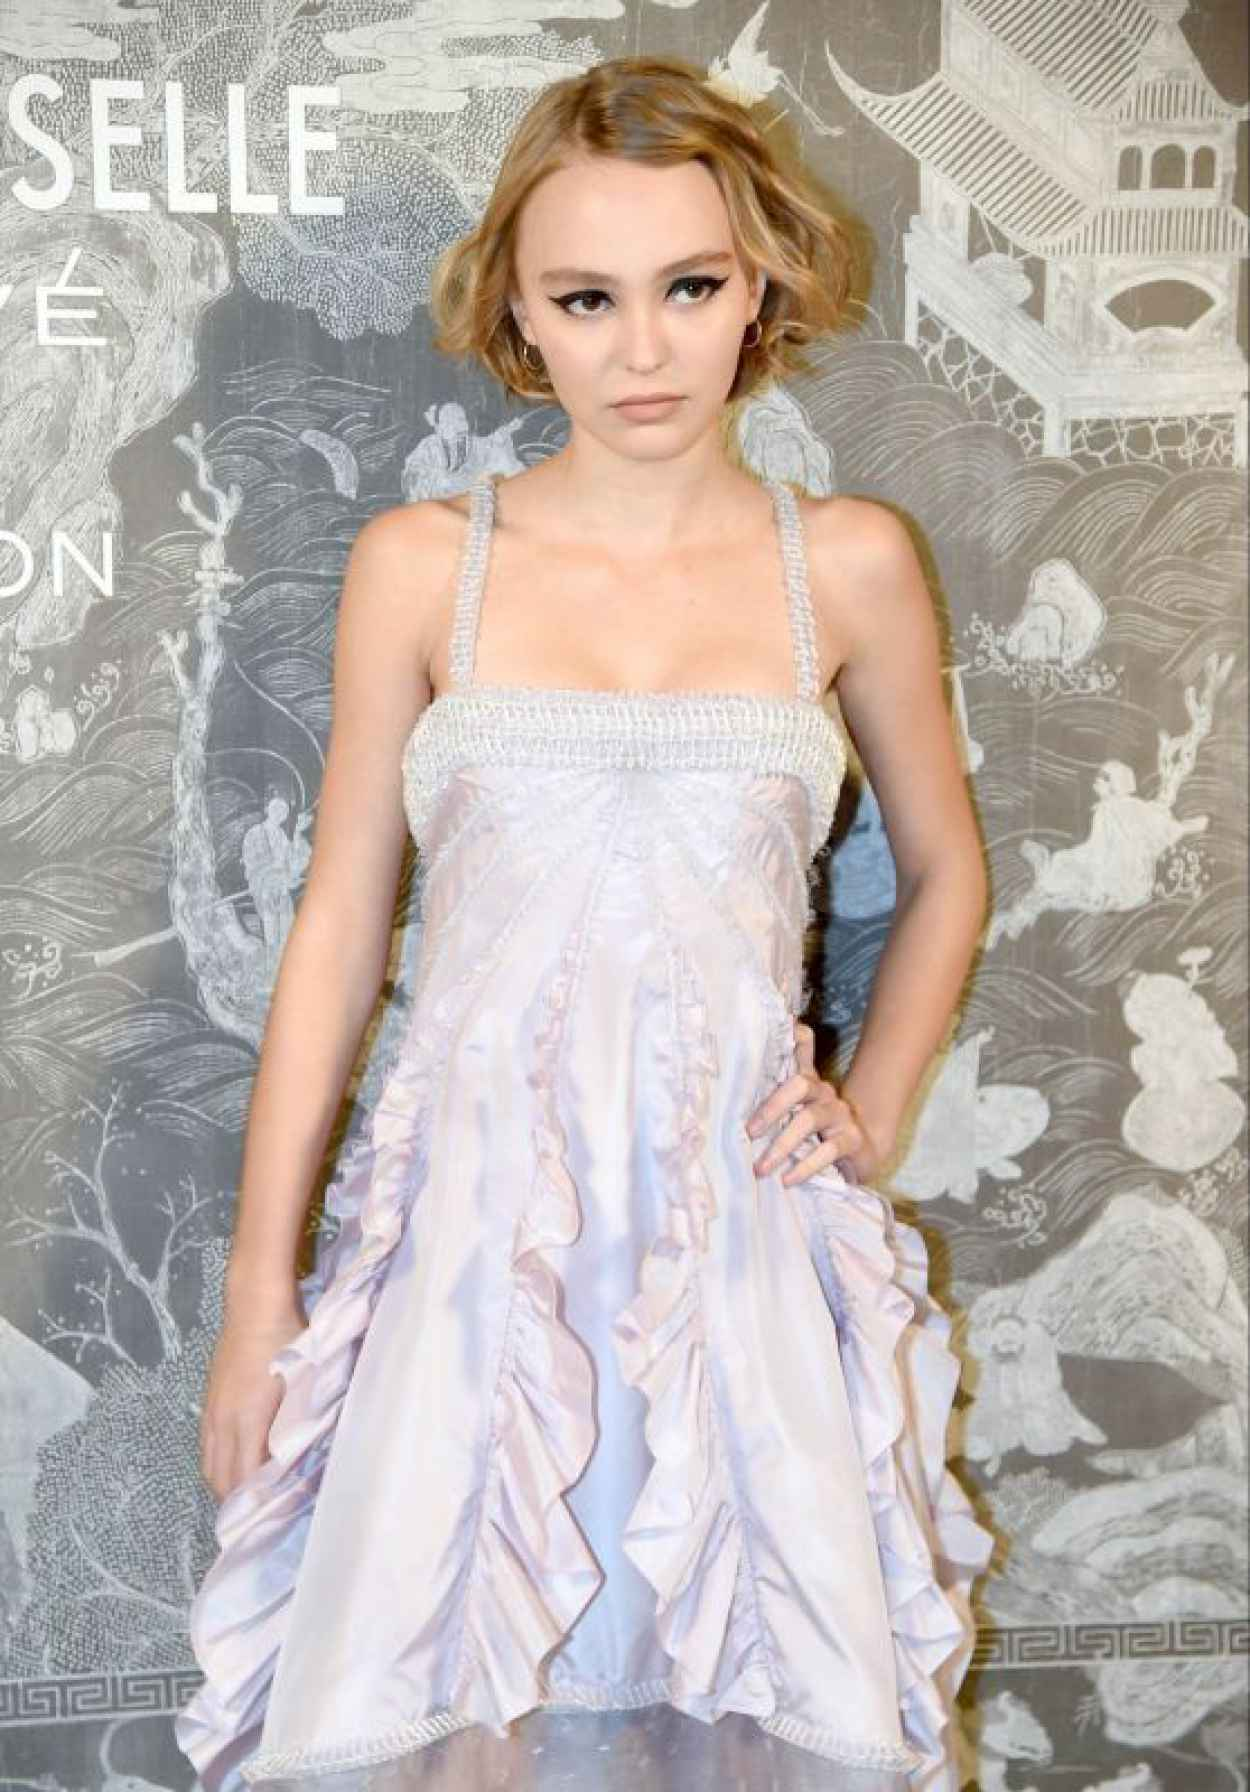 Lily-Rose Depp - Chanel Exhibition Party in London, October 2015-1